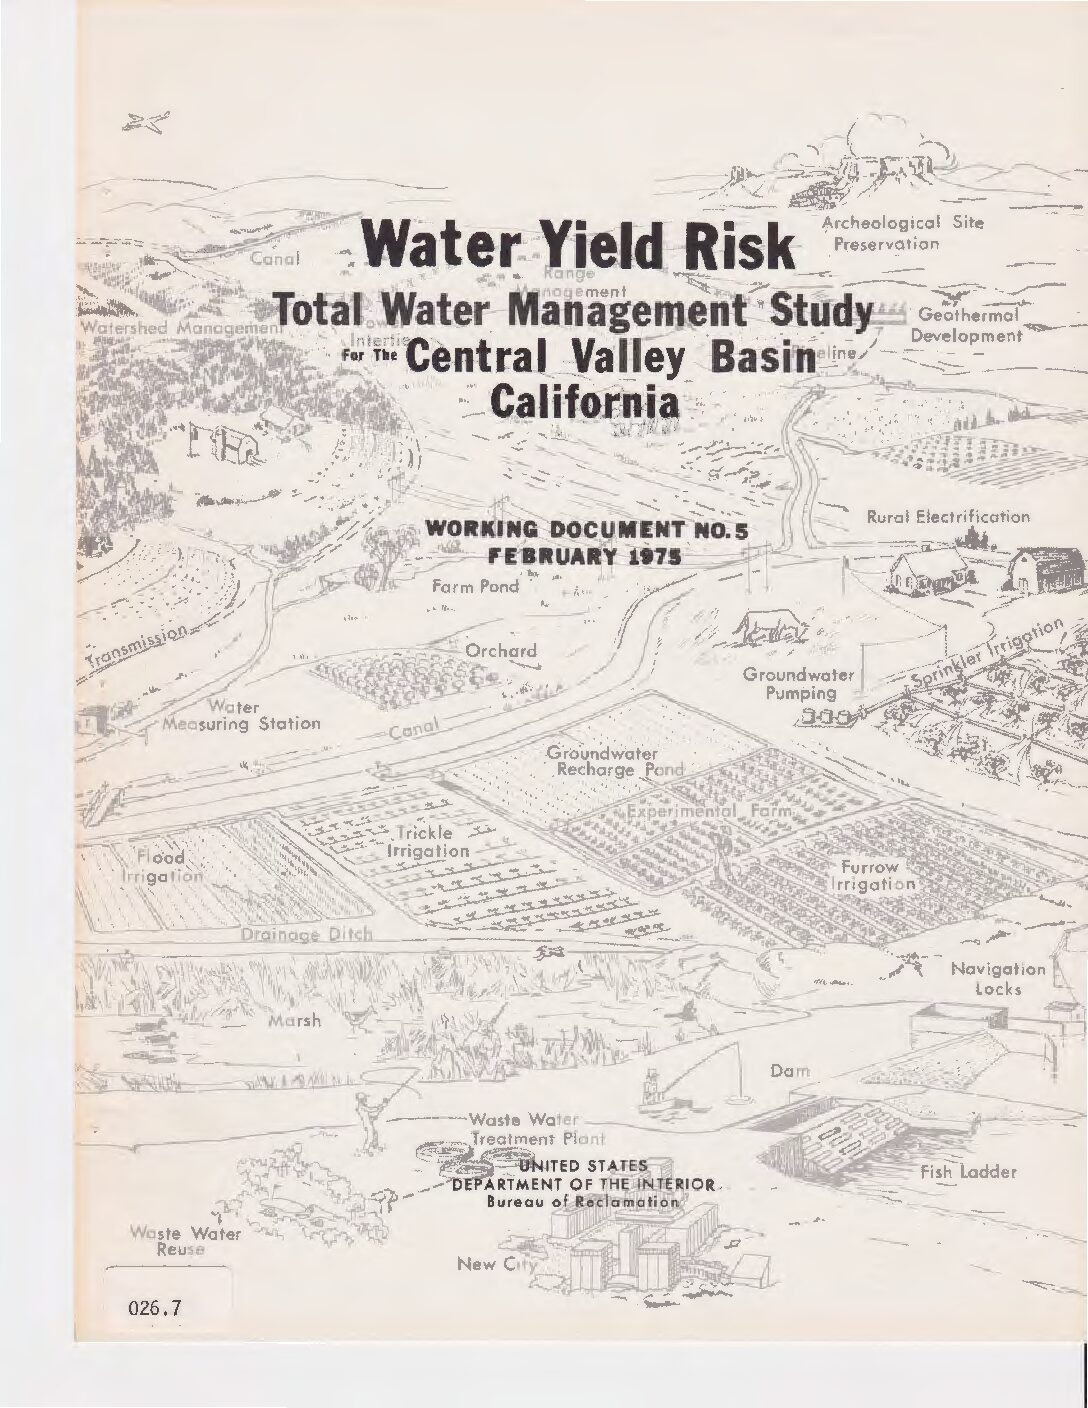 Total Water Management Study for the Central Valley Basin, California, Central Valley Project Water Yield Risk Working Document No. 5